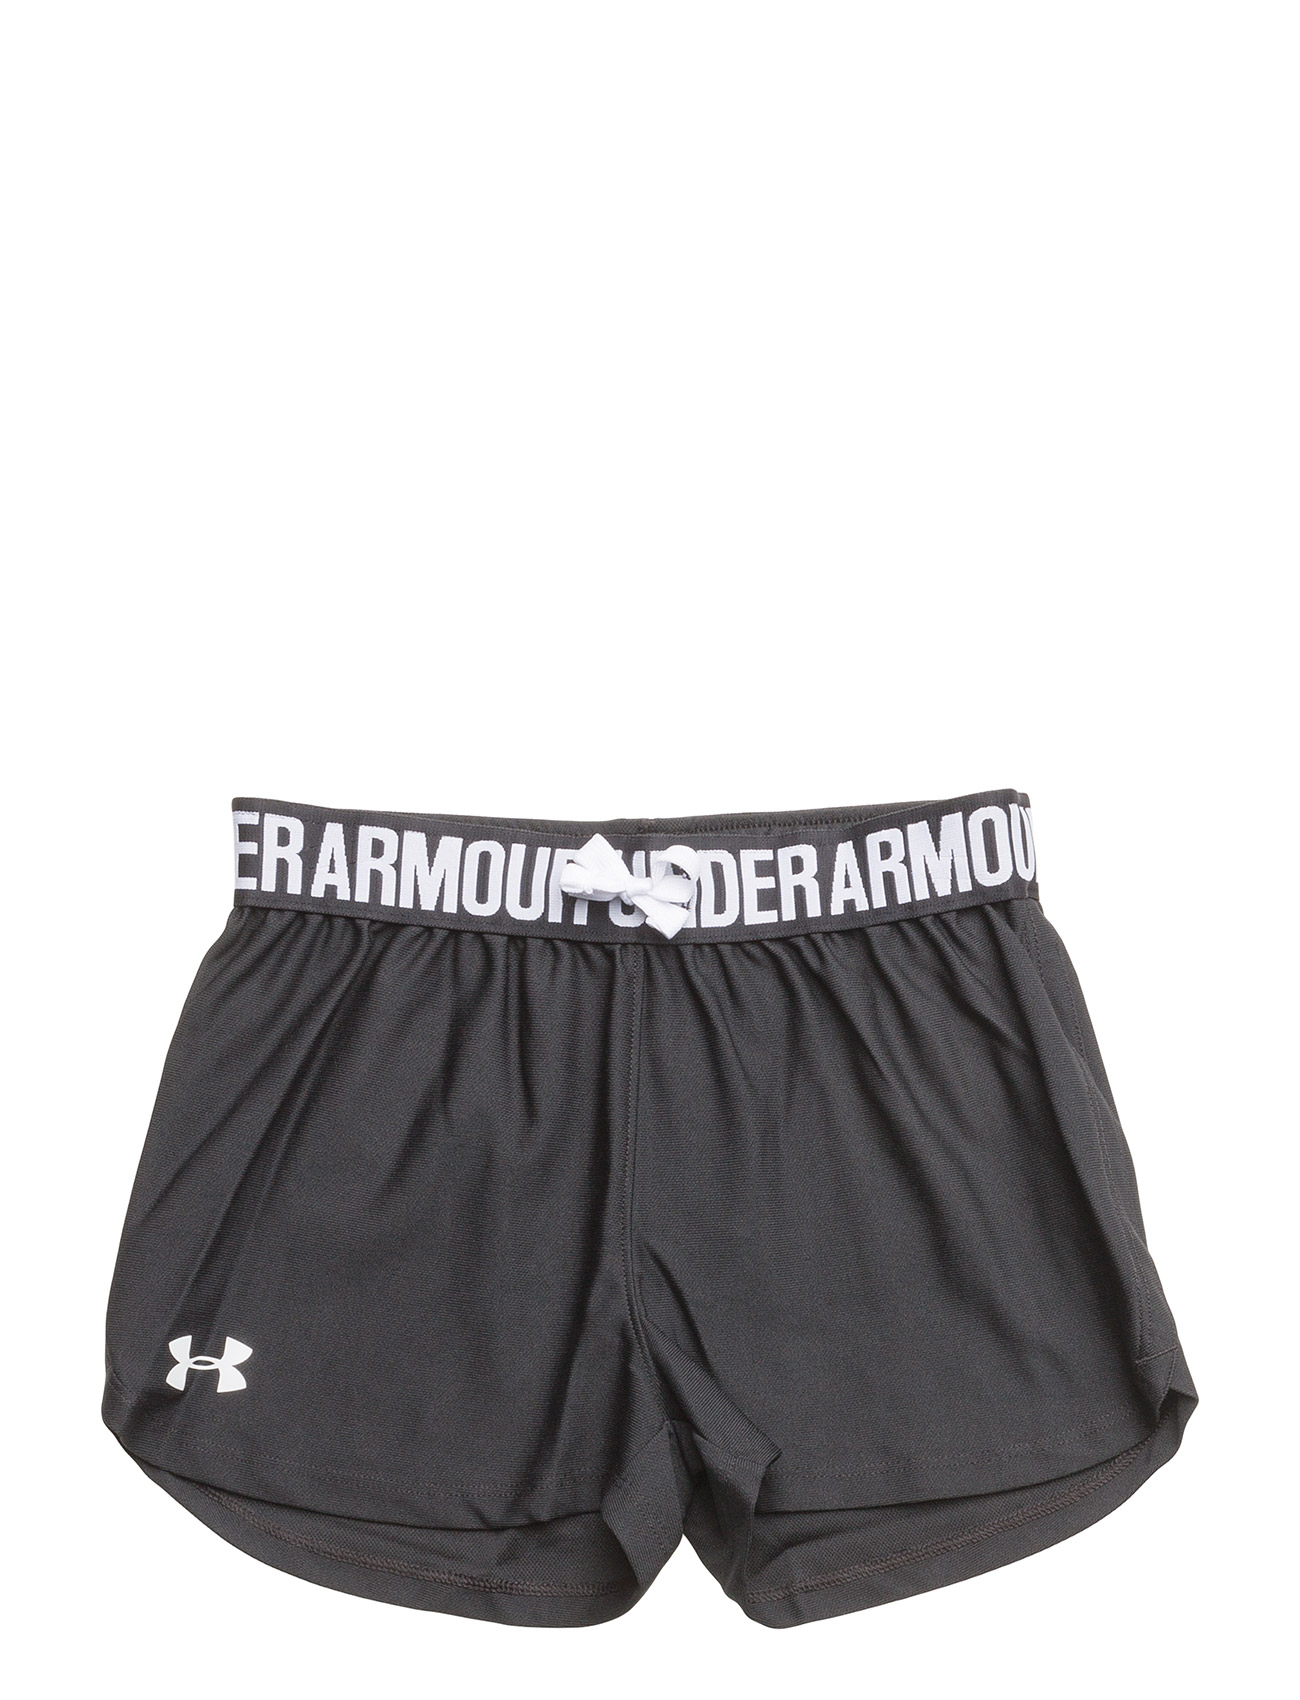 Play Up Short - Under Armour